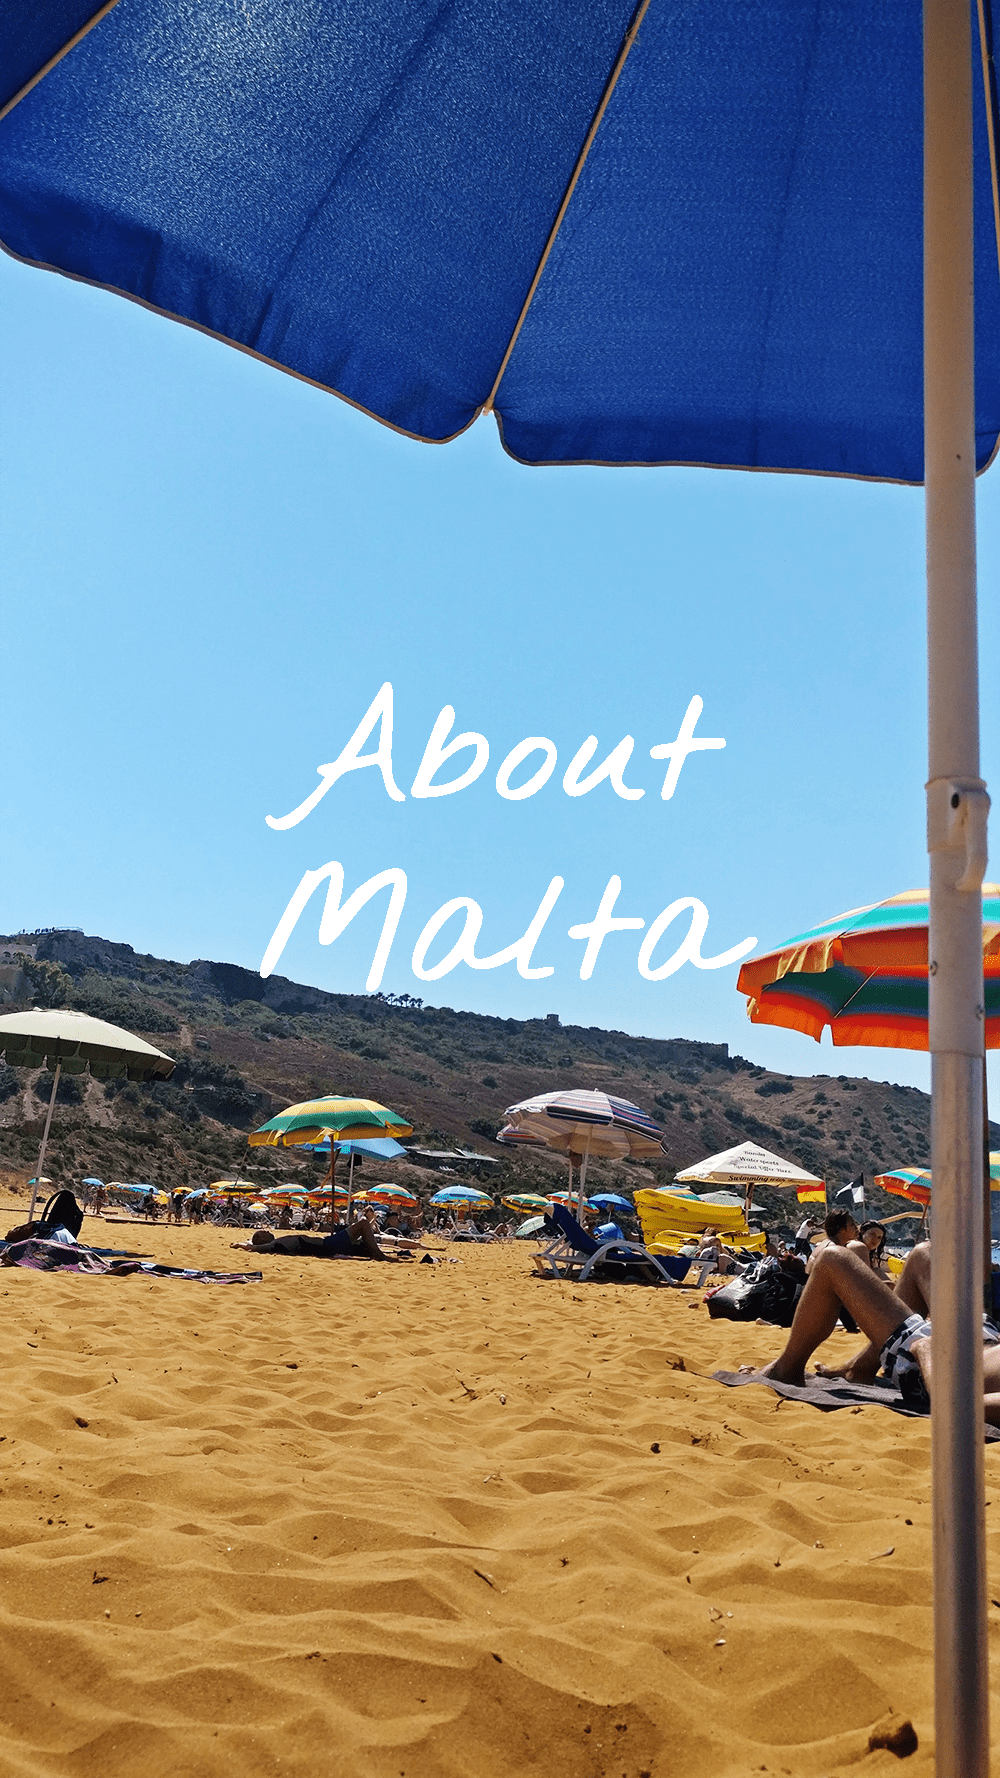 About Malta - the islands - weather - Maltese people - interesting facts - traffic - eating and drinking